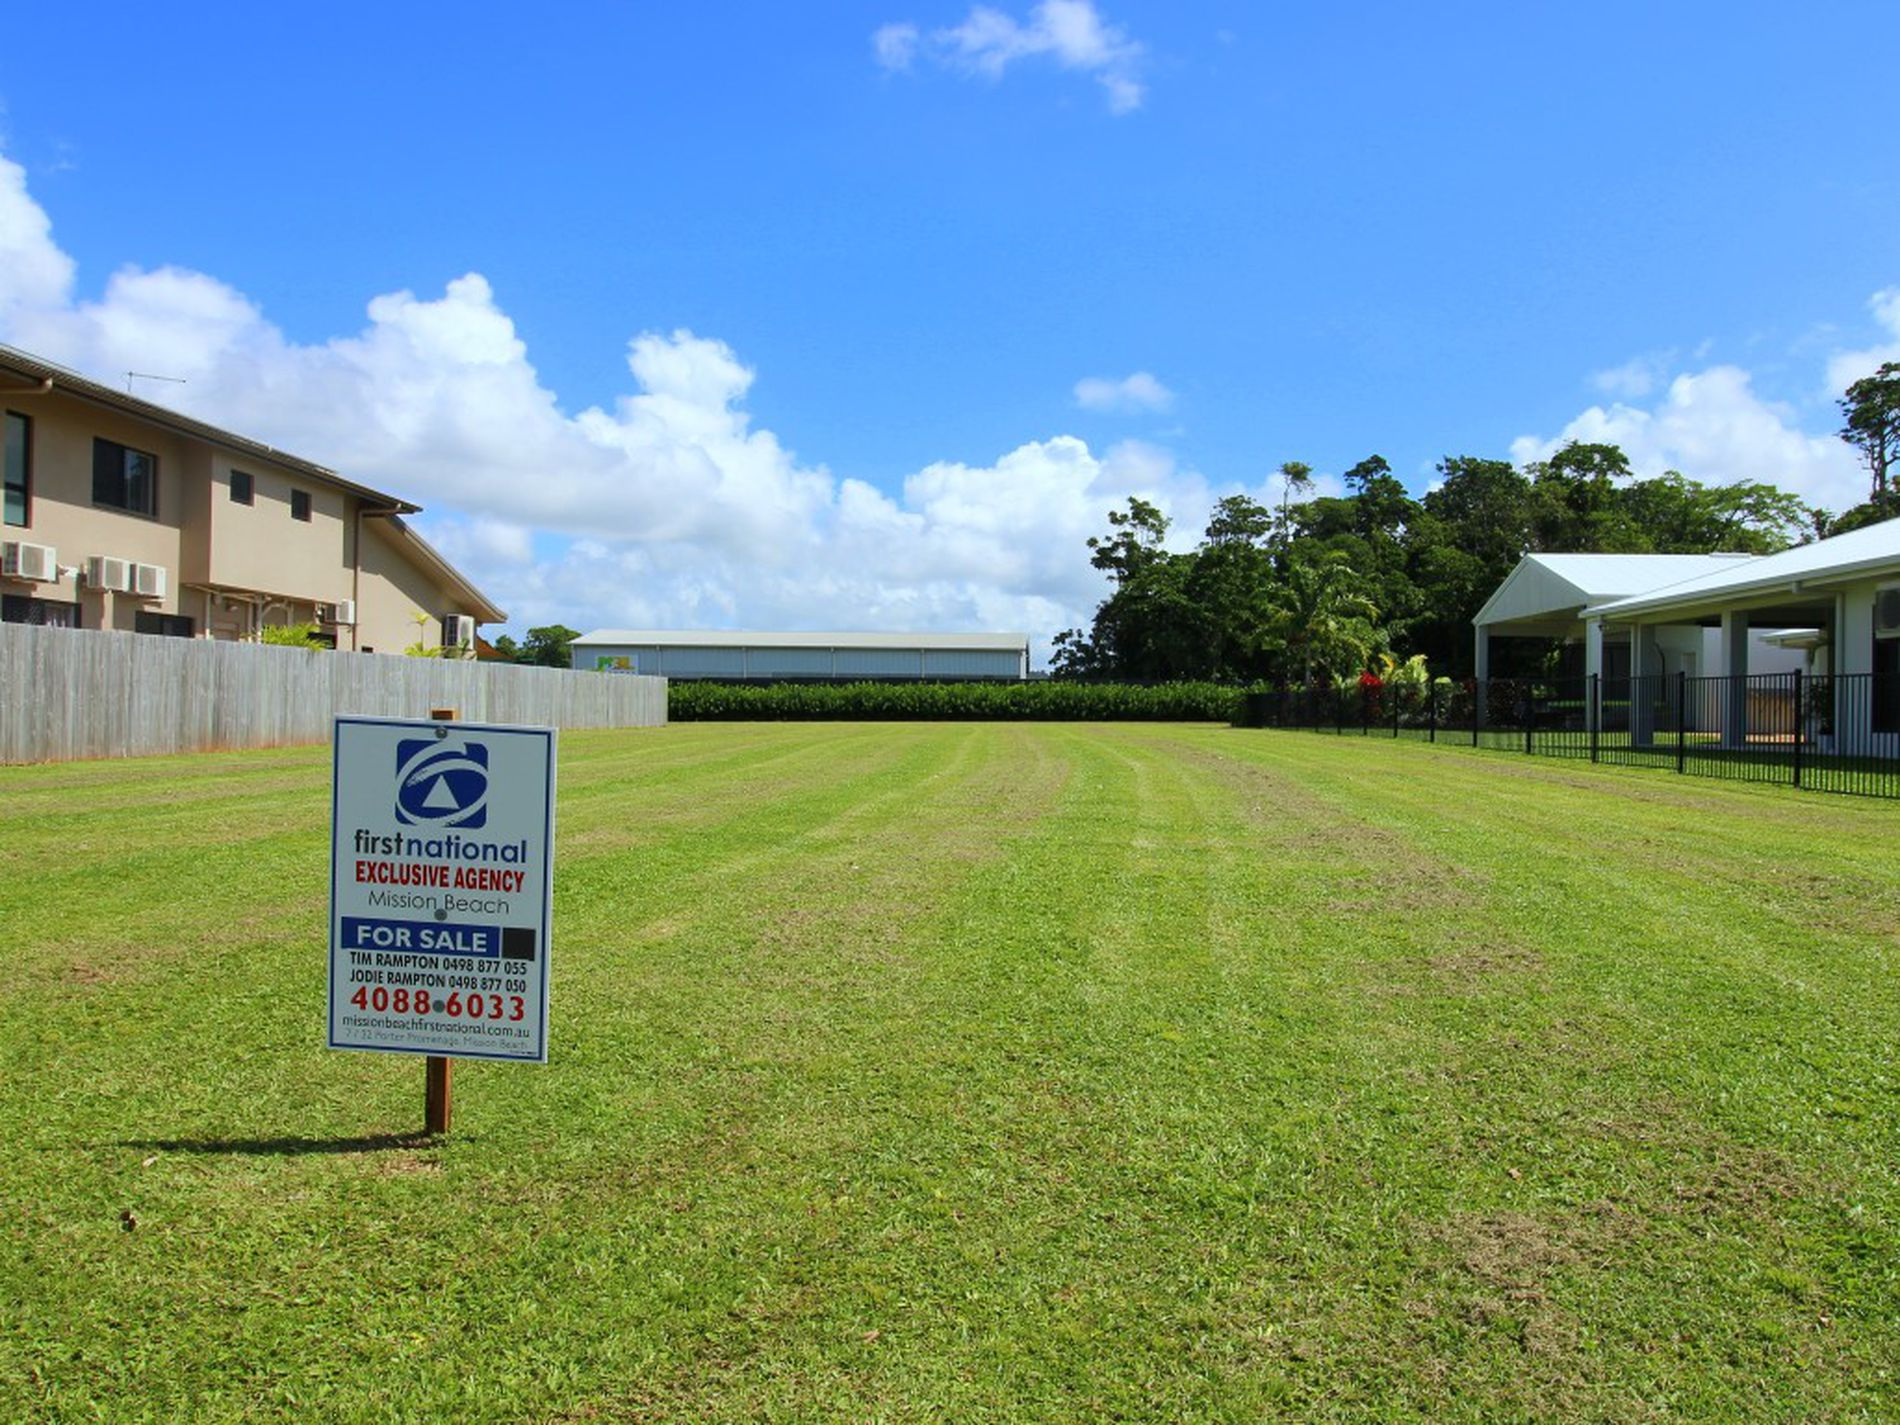 Lot 10, 3 Nautilus Street, Mission Beach